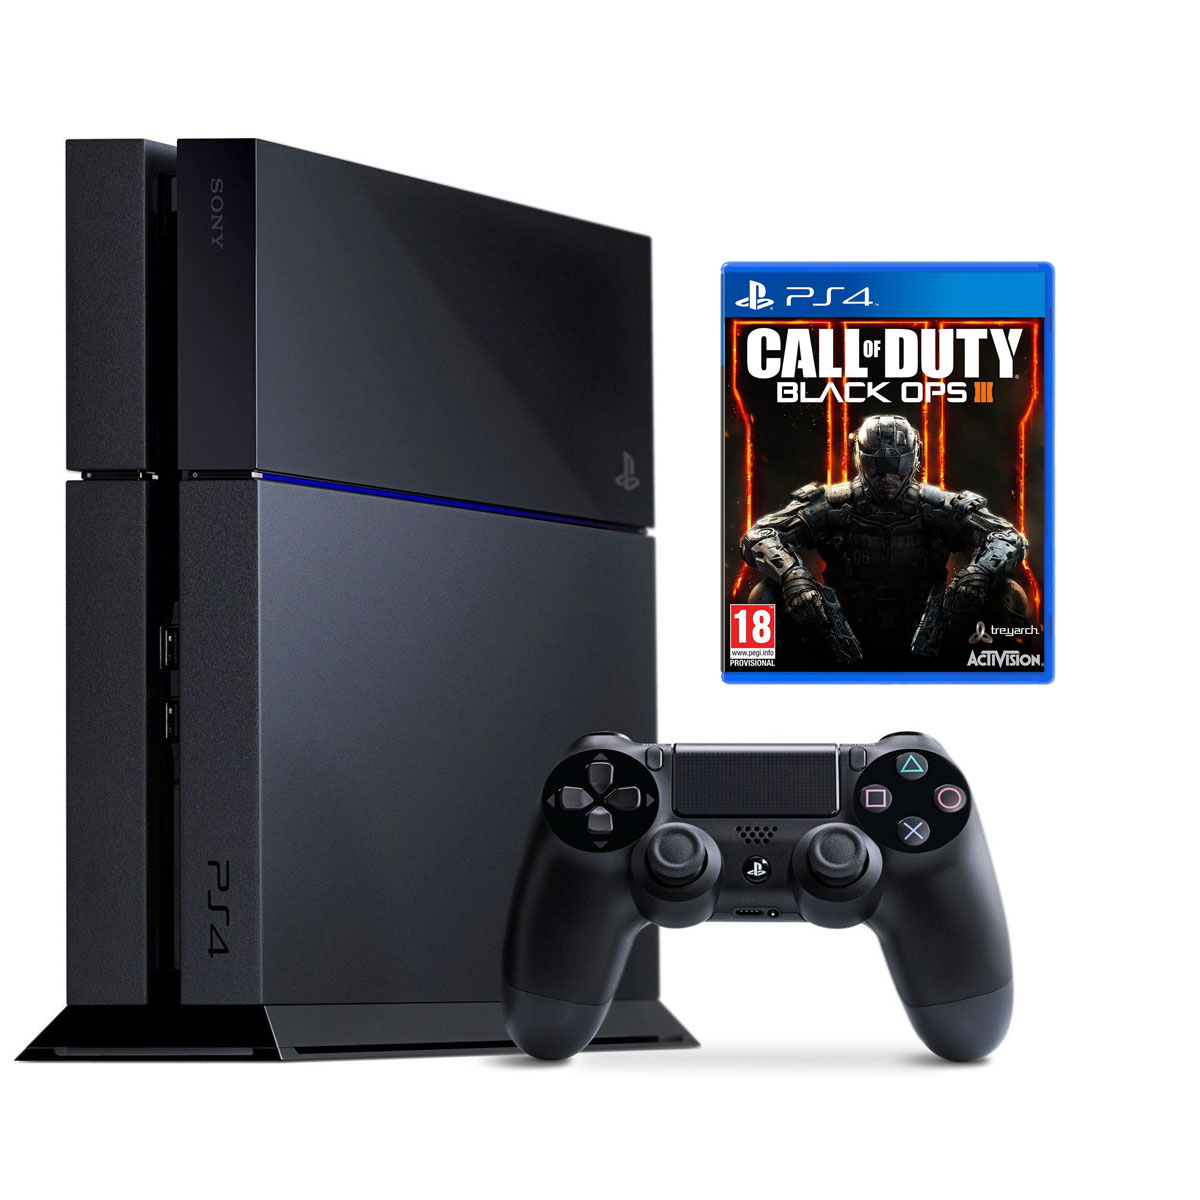 sony playstation 4 1 to call of duty black ops iii. Black Bedroom Furniture Sets. Home Design Ideas